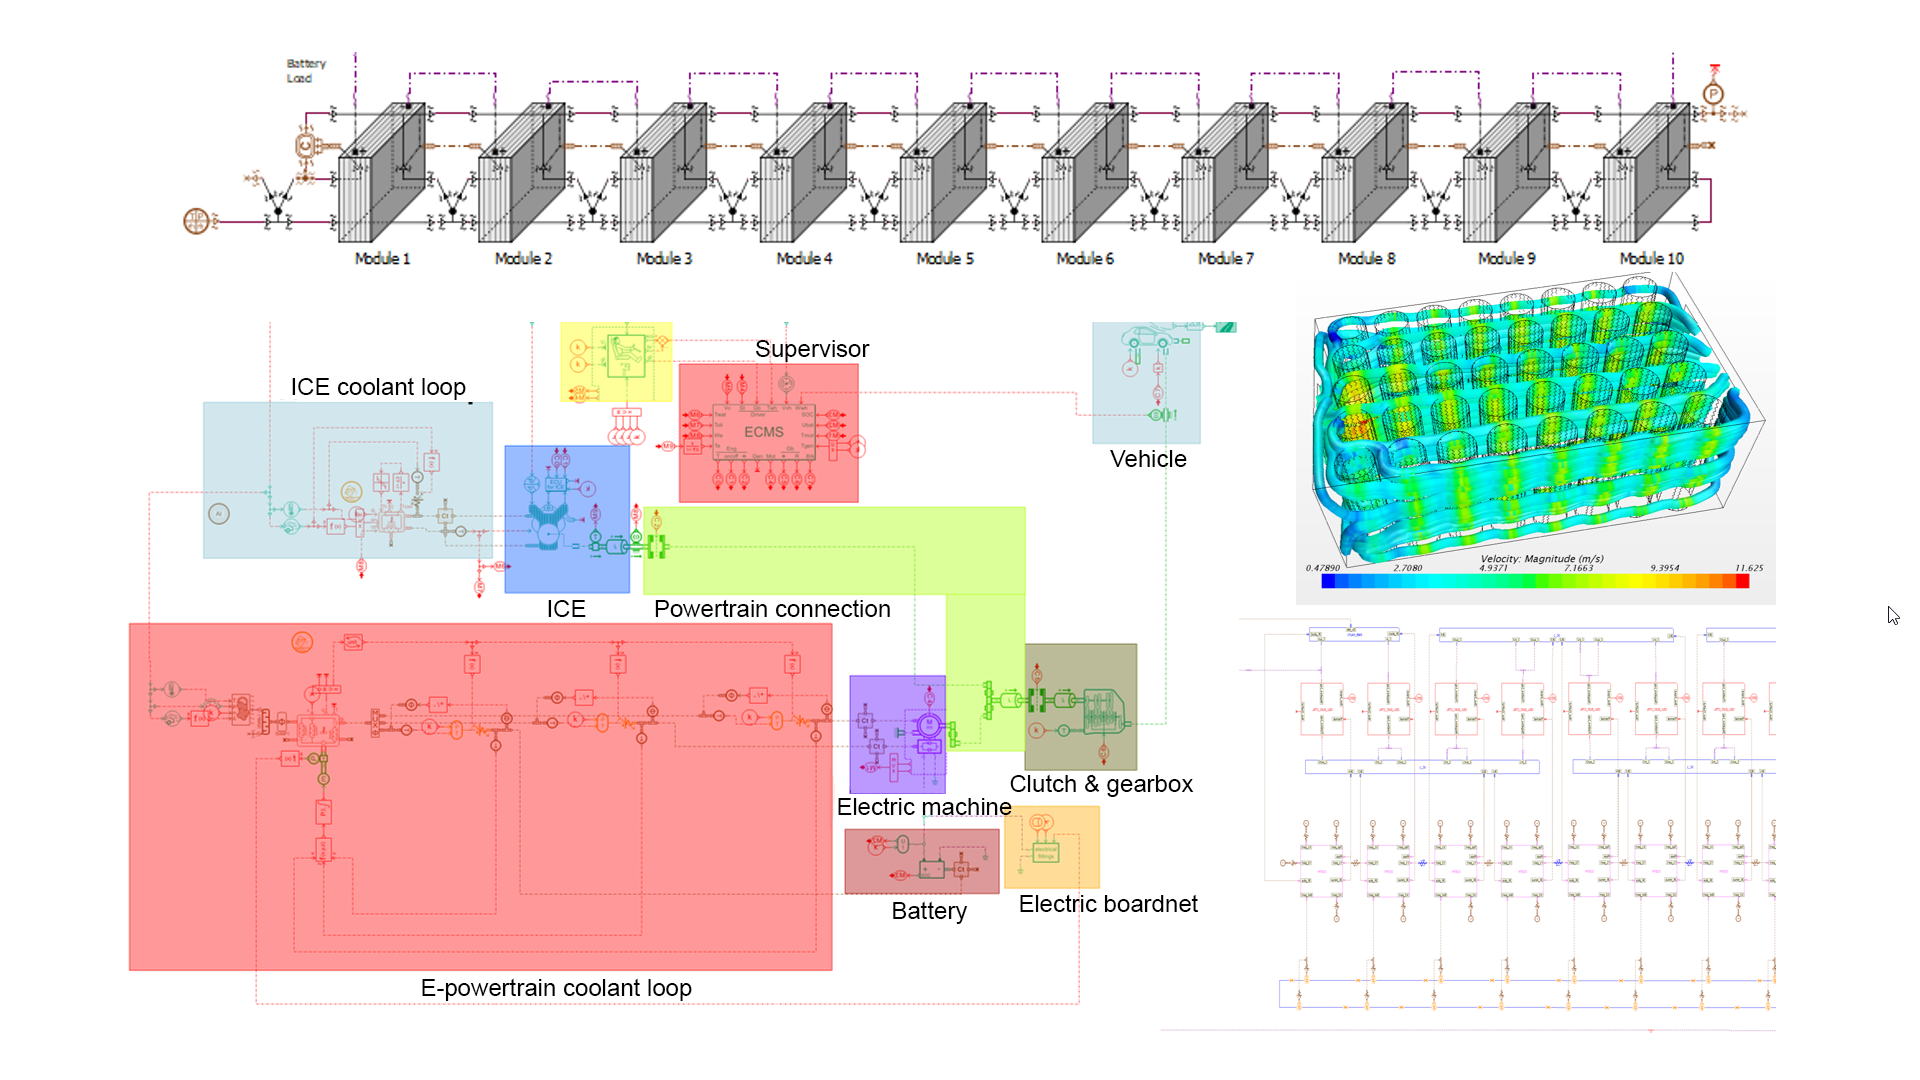 Optimizing battery thermal management system design and architecture using multi-level modeling